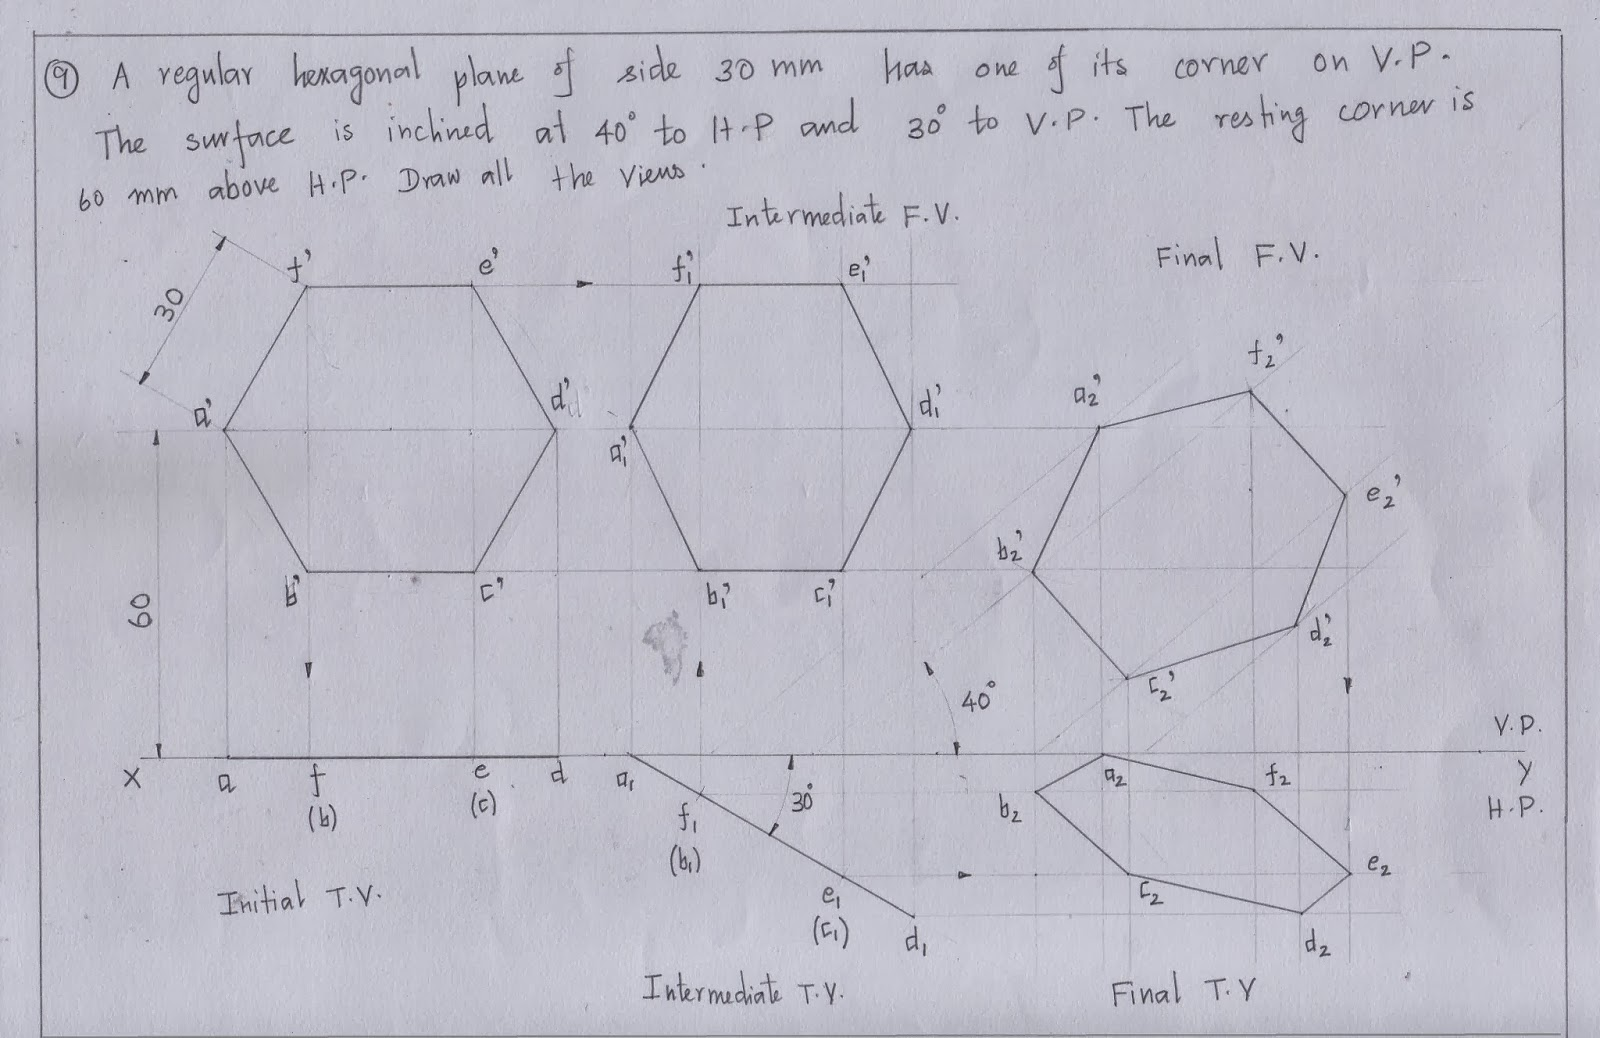 engineering graphics for engineers projection of planes plane inclined to both hp and vp hexagon